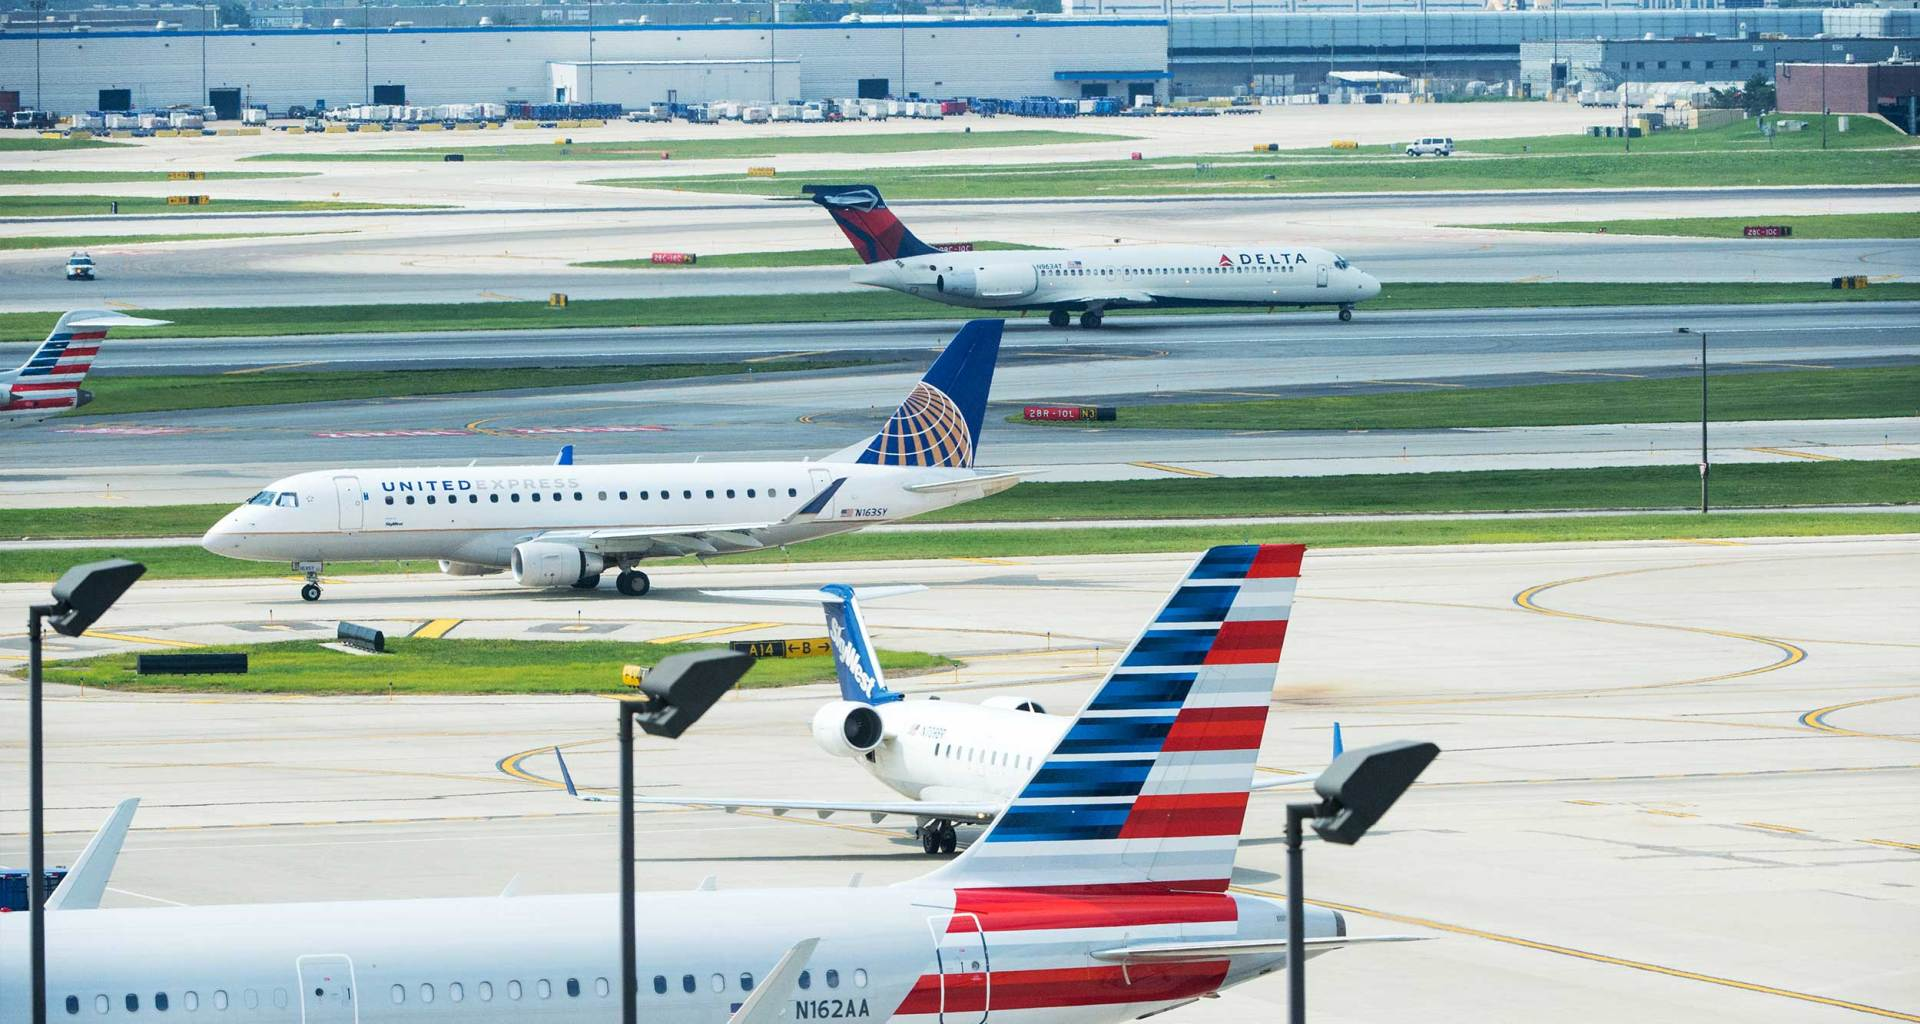 Airplanes at Chicago O'Hare International Airport.